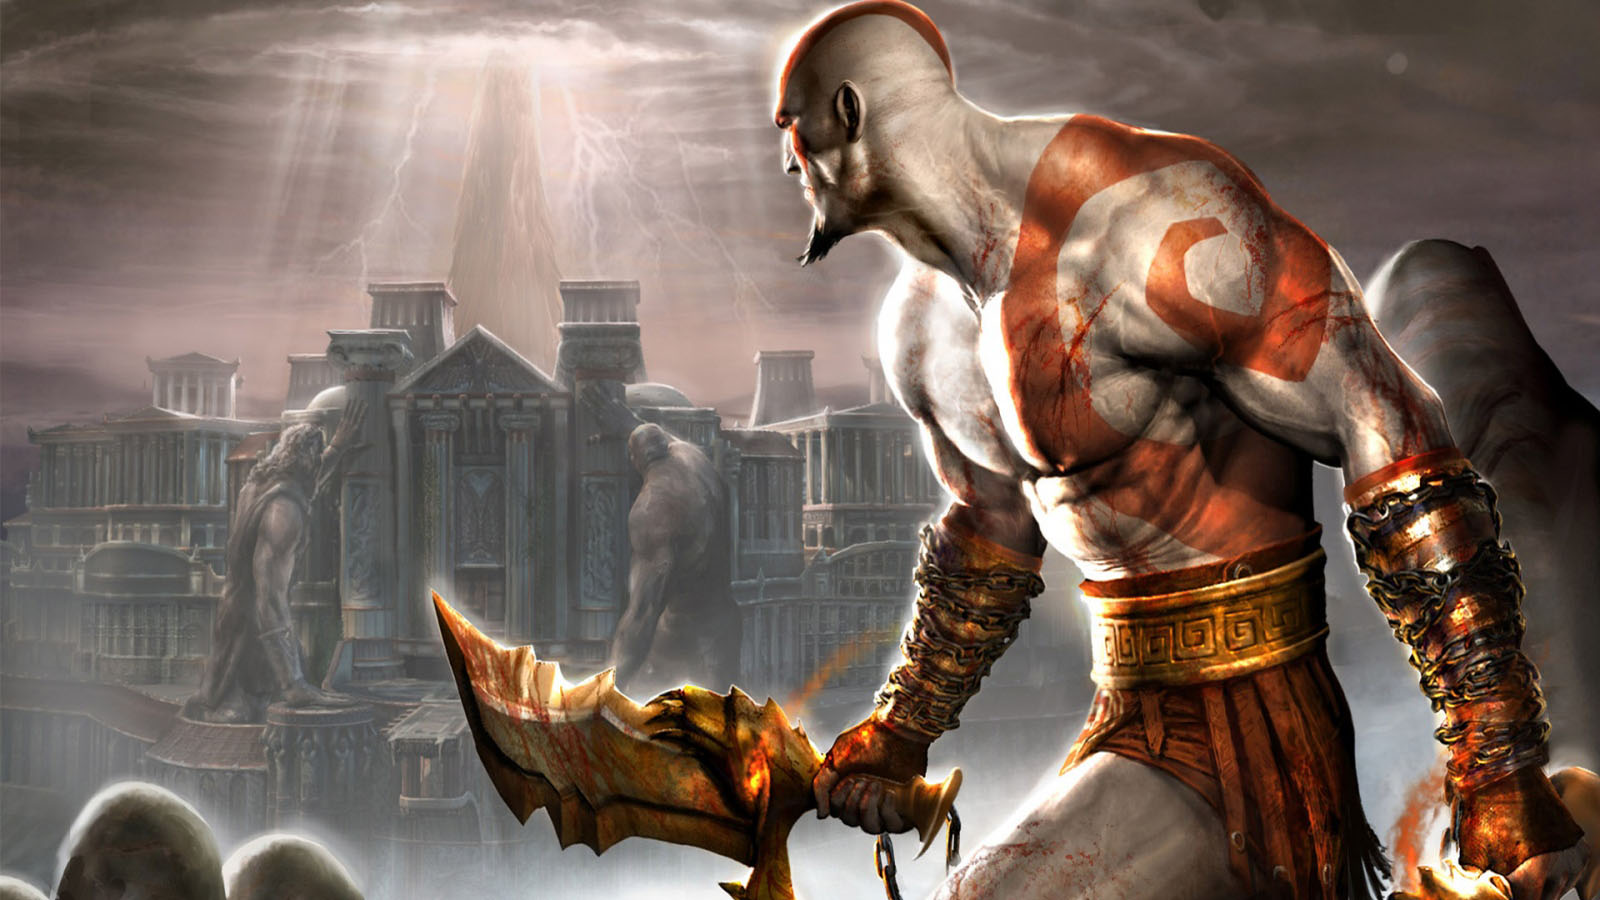 God Of War 2 HQ wallpapers